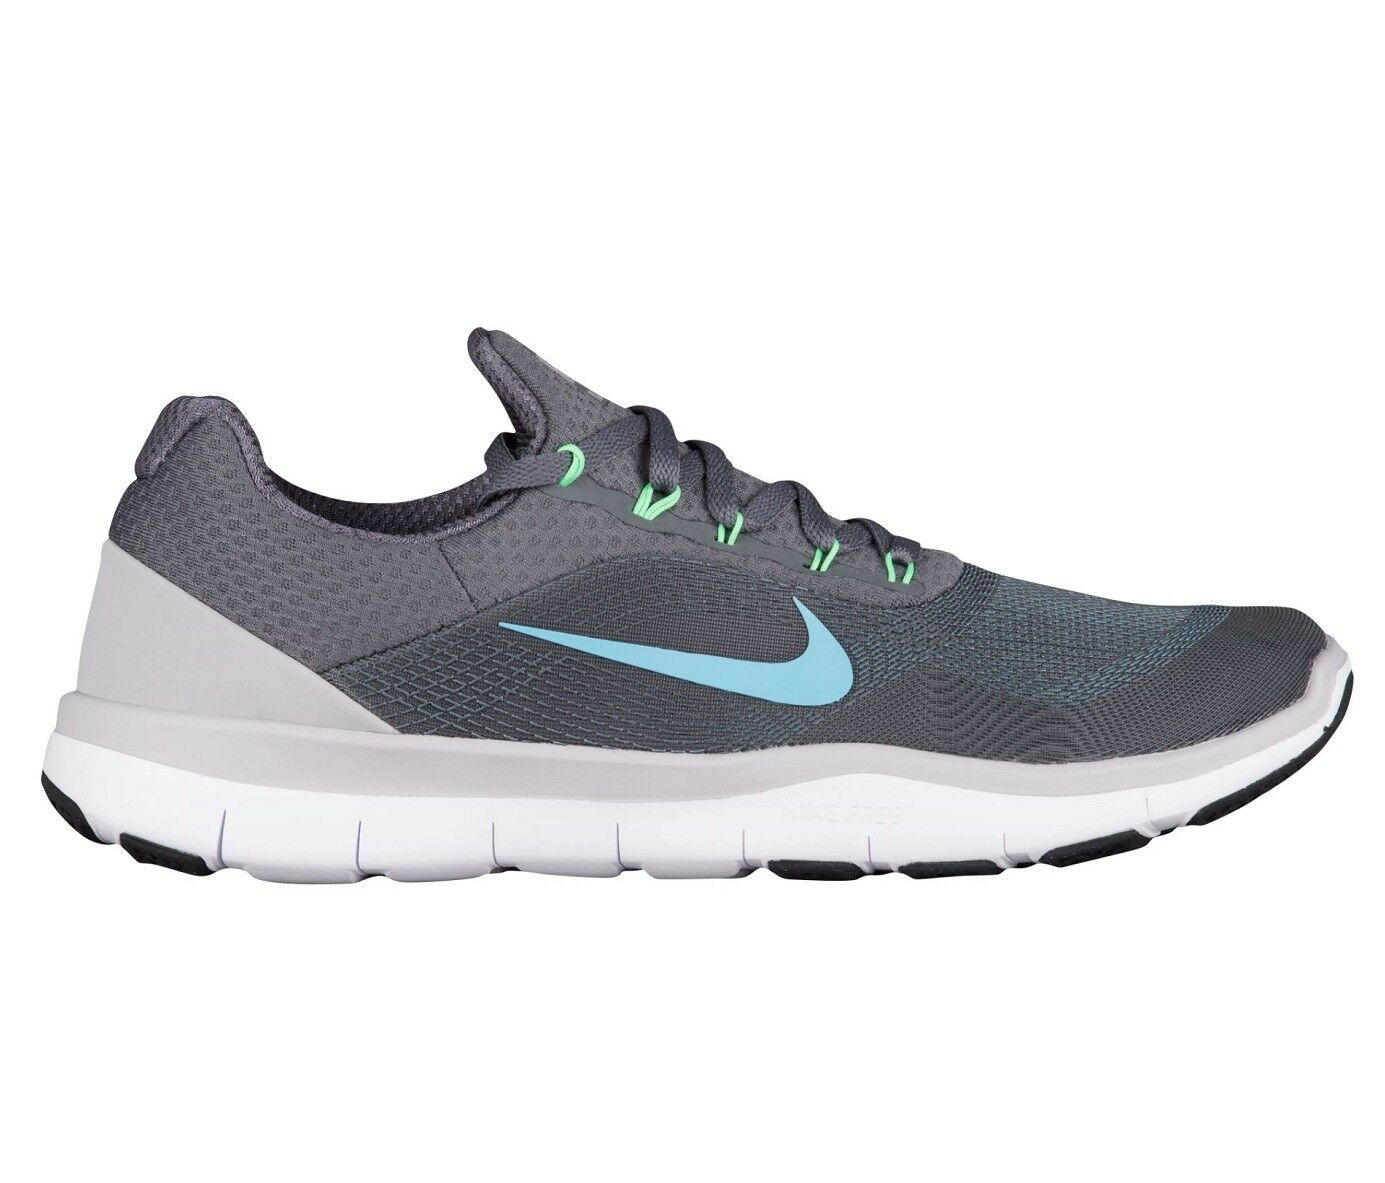 Nike Free Trainer V7 Mens 898053-006 Dark Grey Blue Training Shoes Size 13